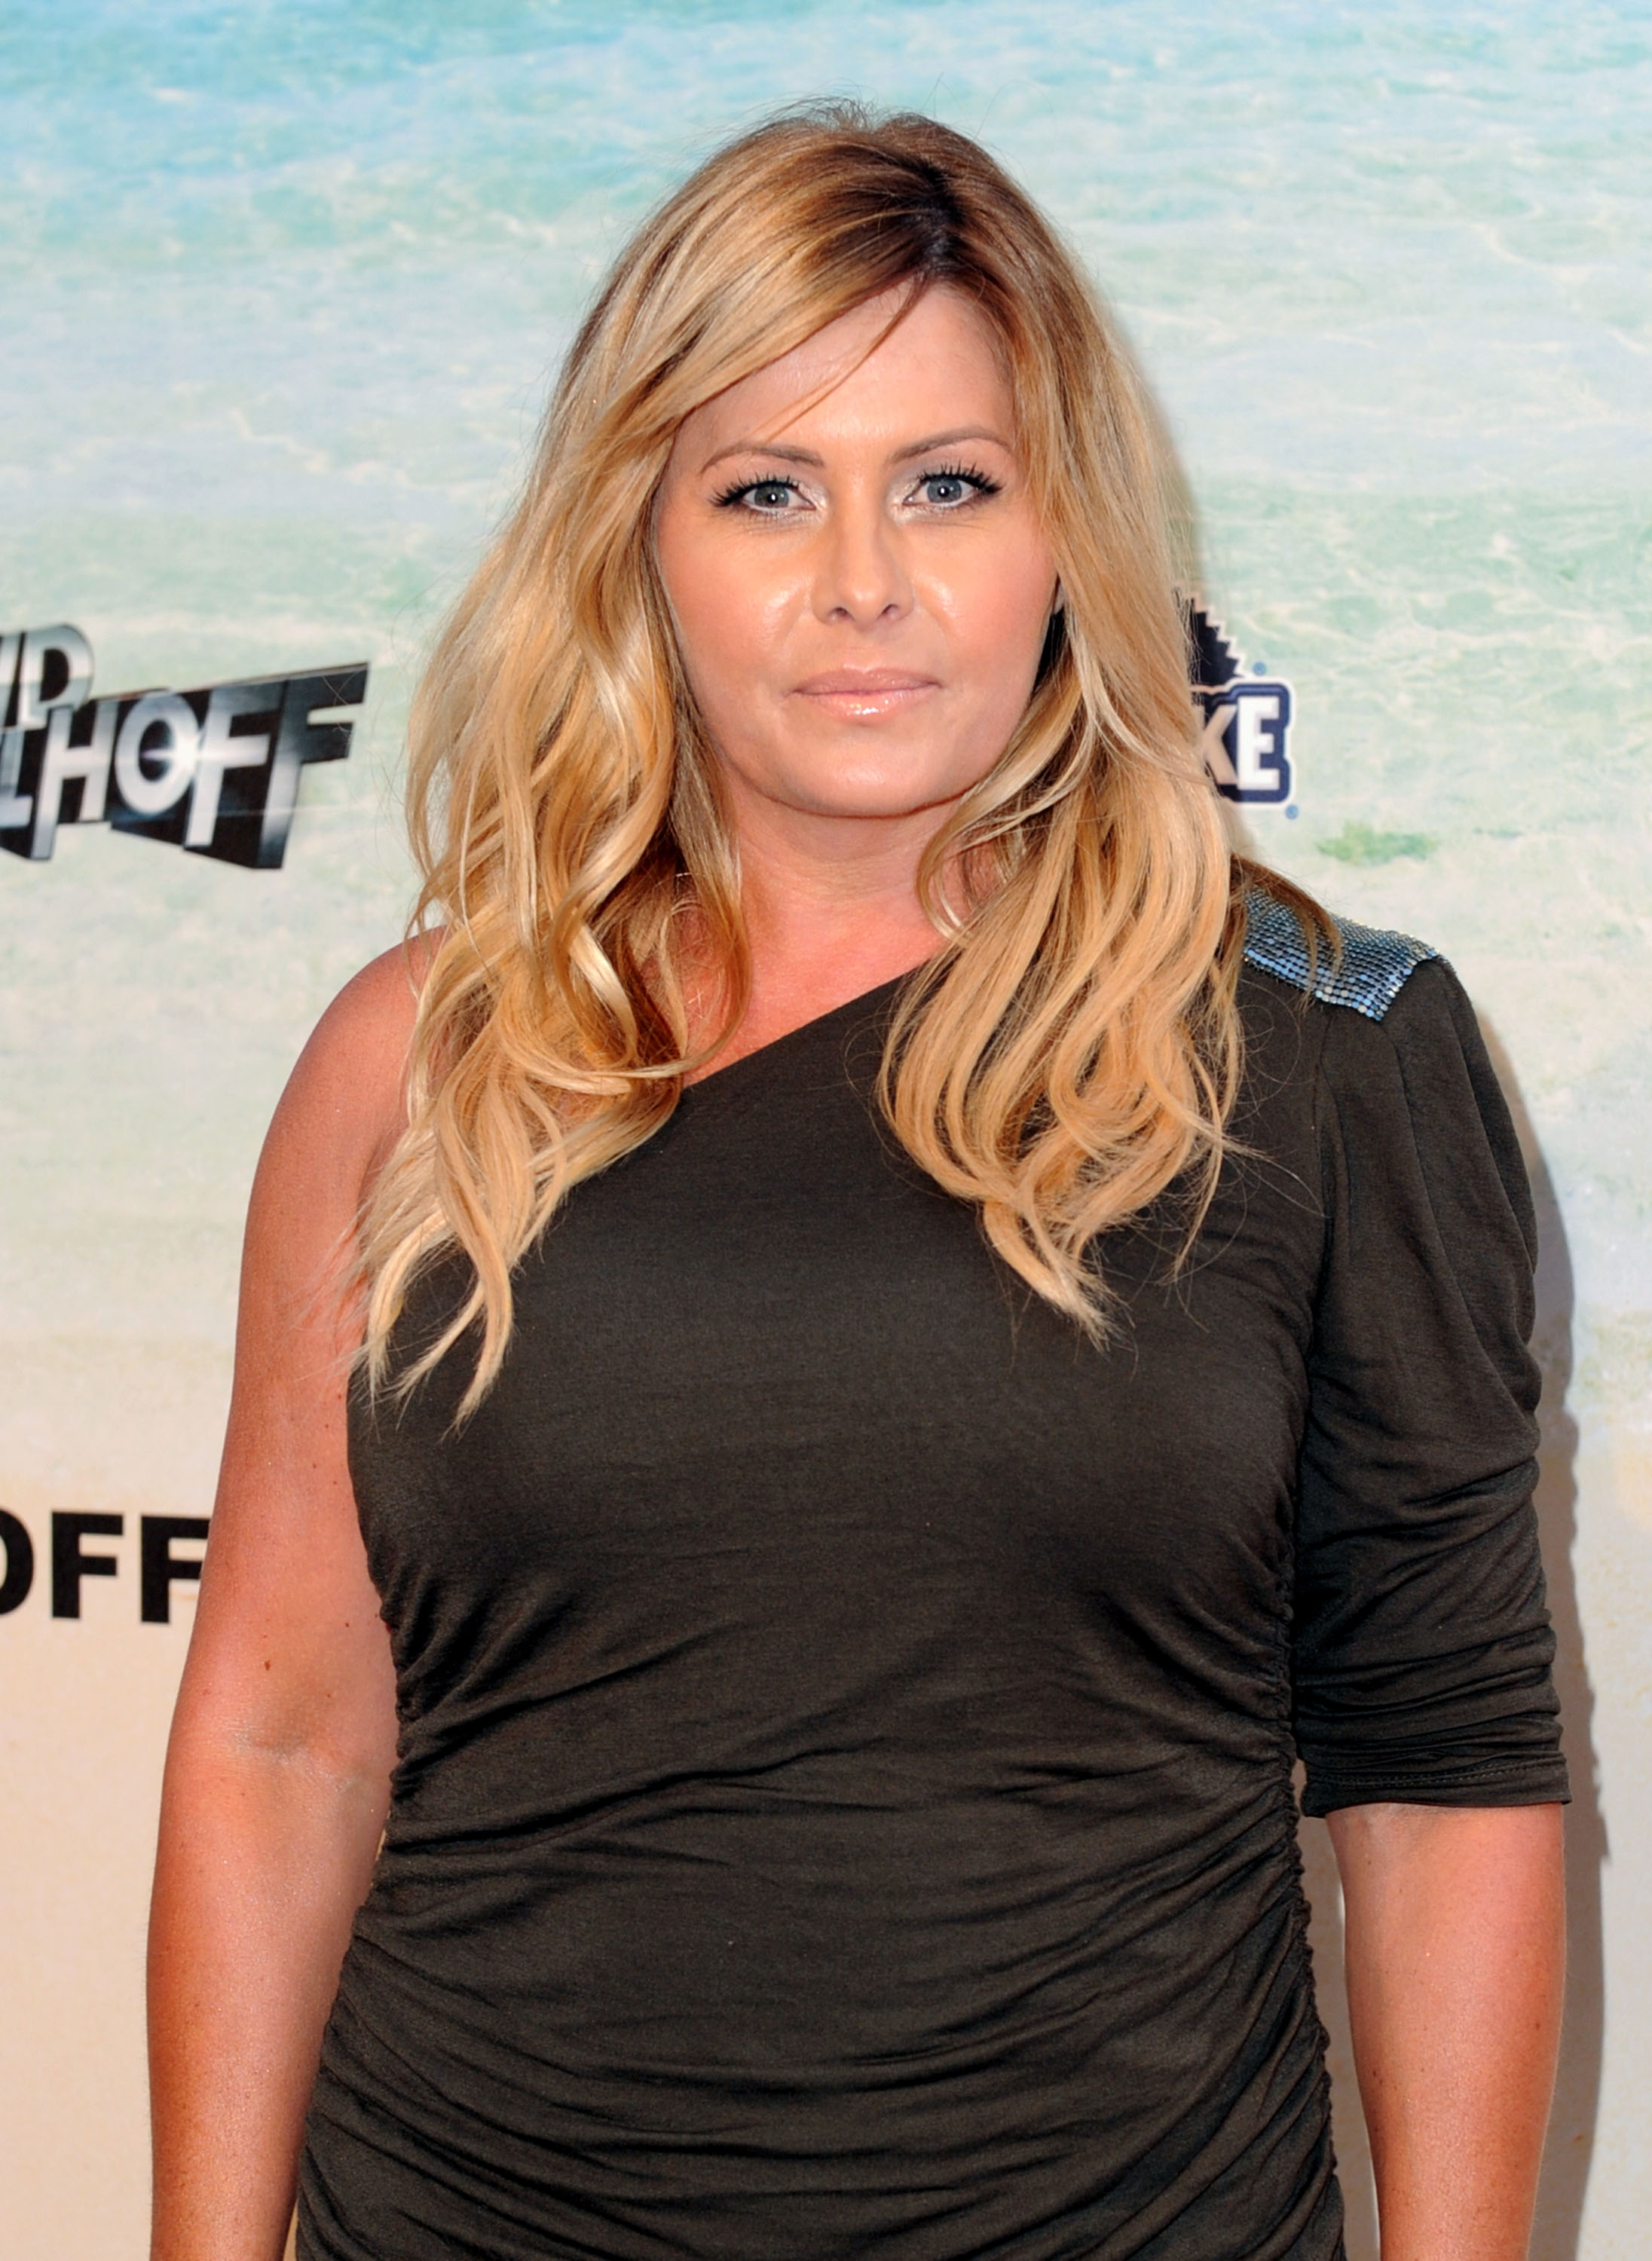 Nicole Eggert earned a  million dollar salary - leaving the net worth at 4 million in 2018